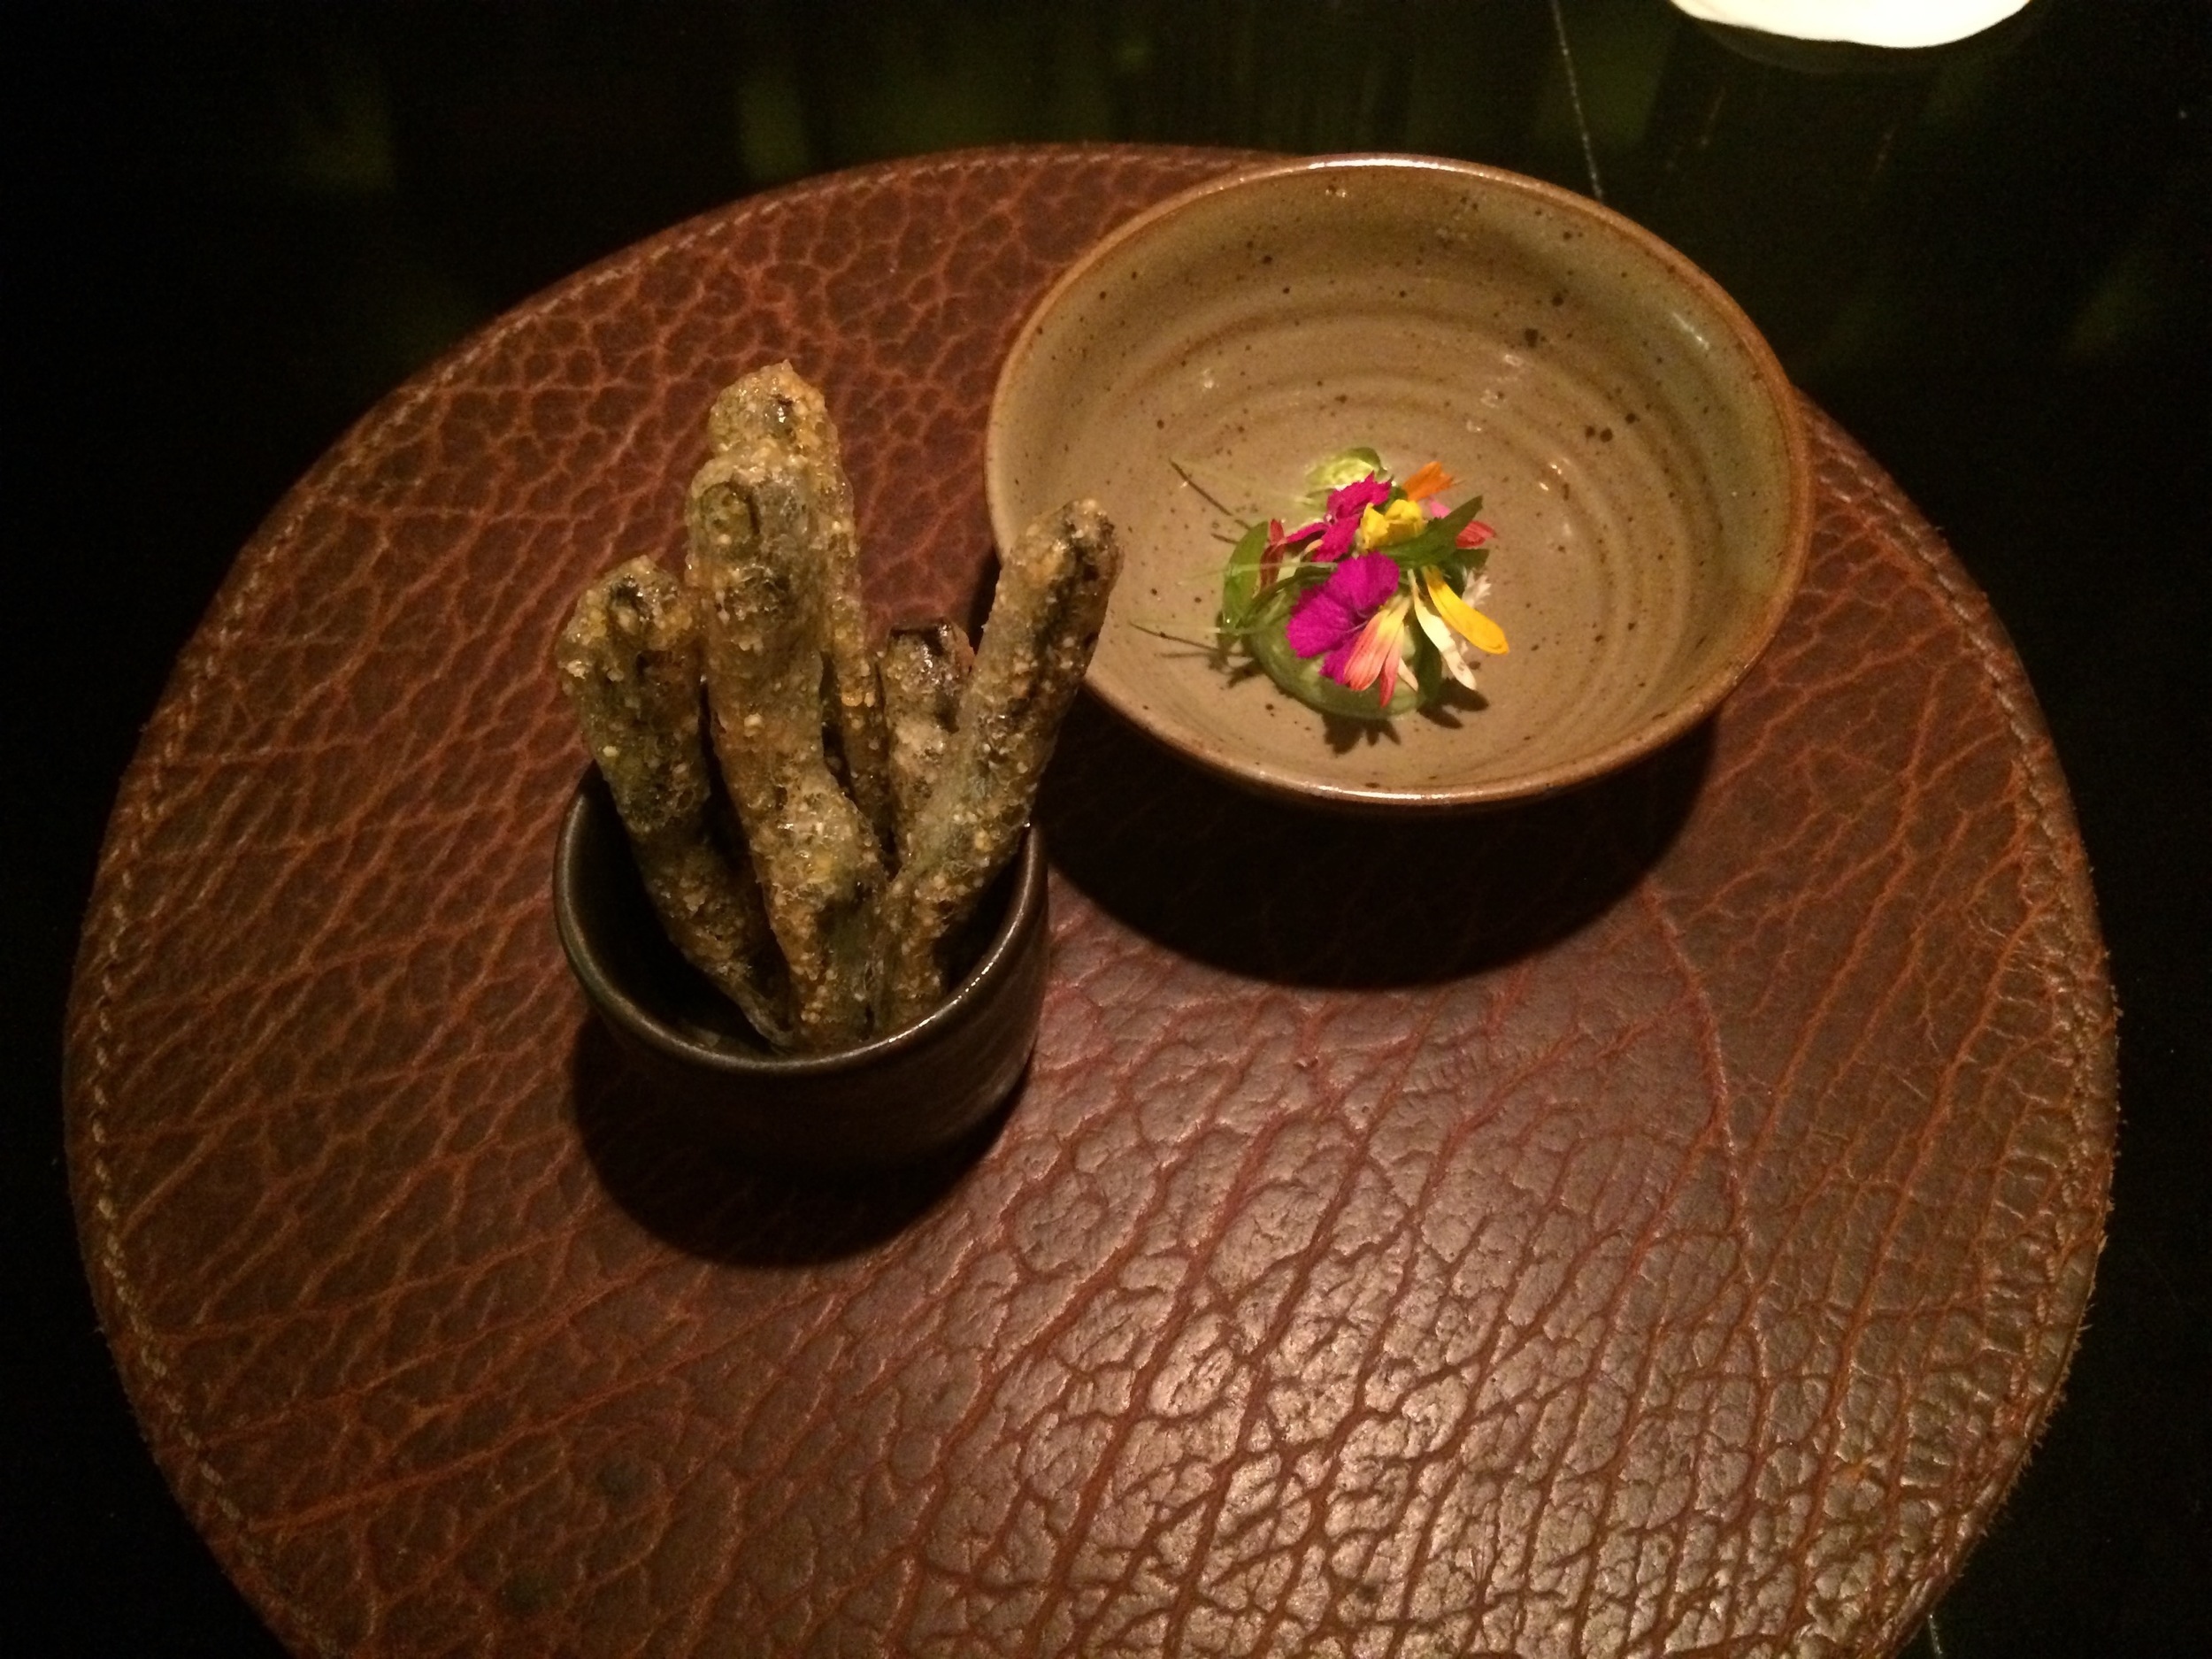 Fried pickles with a cactus and poblano pepper dip were a perfect bar snack.